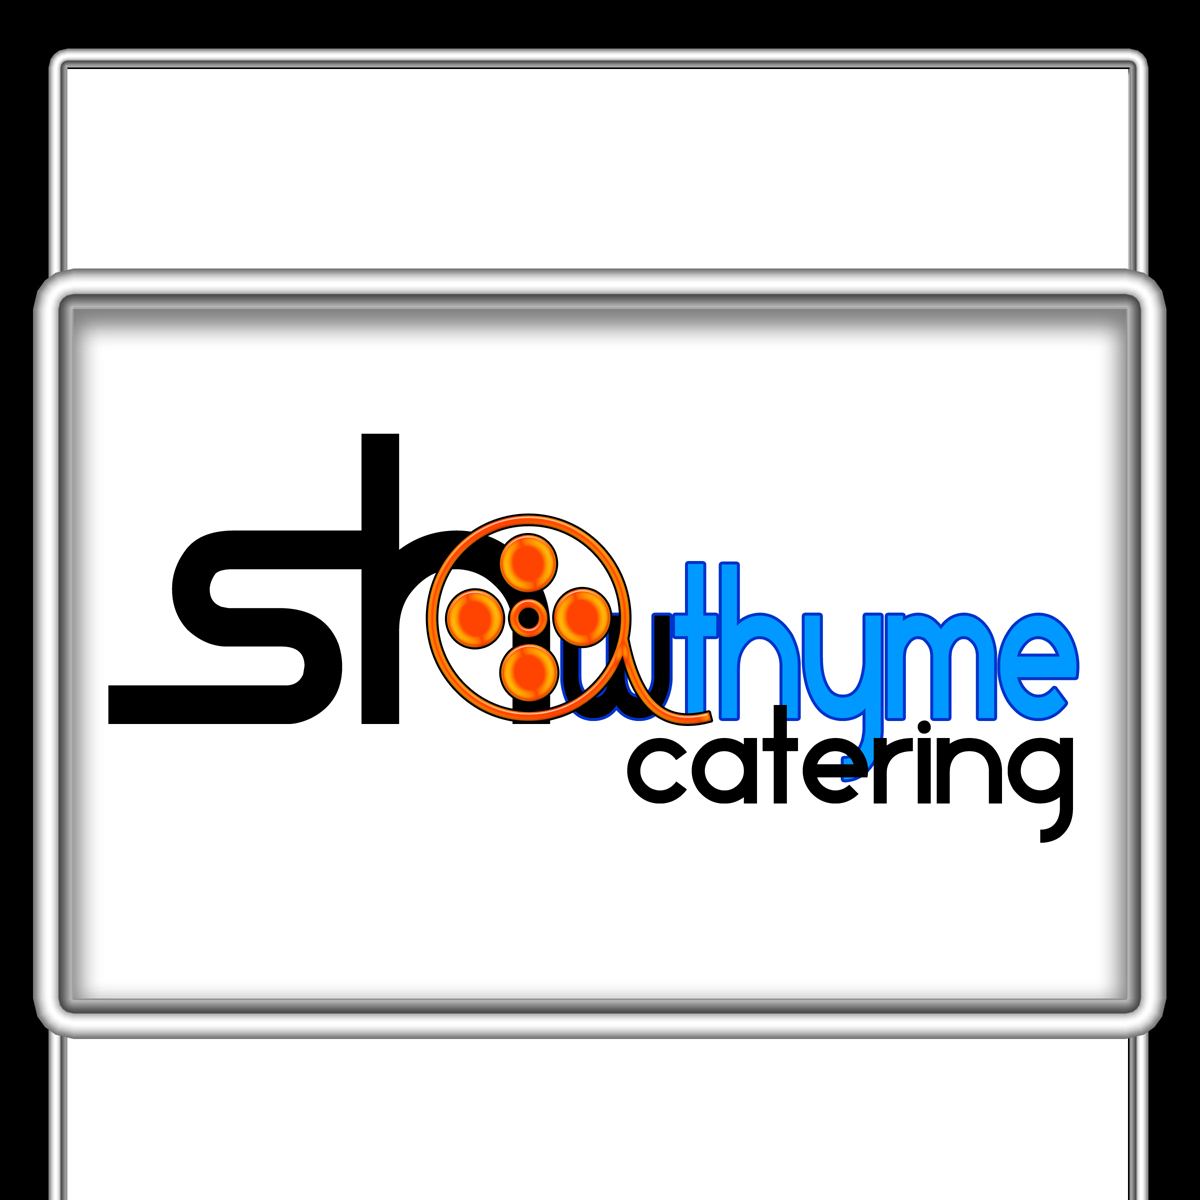 Logo Design by MITUCA ANDREI - Entry No. 8 in the Logo Design Contest Showthyme Catering Logo Design.